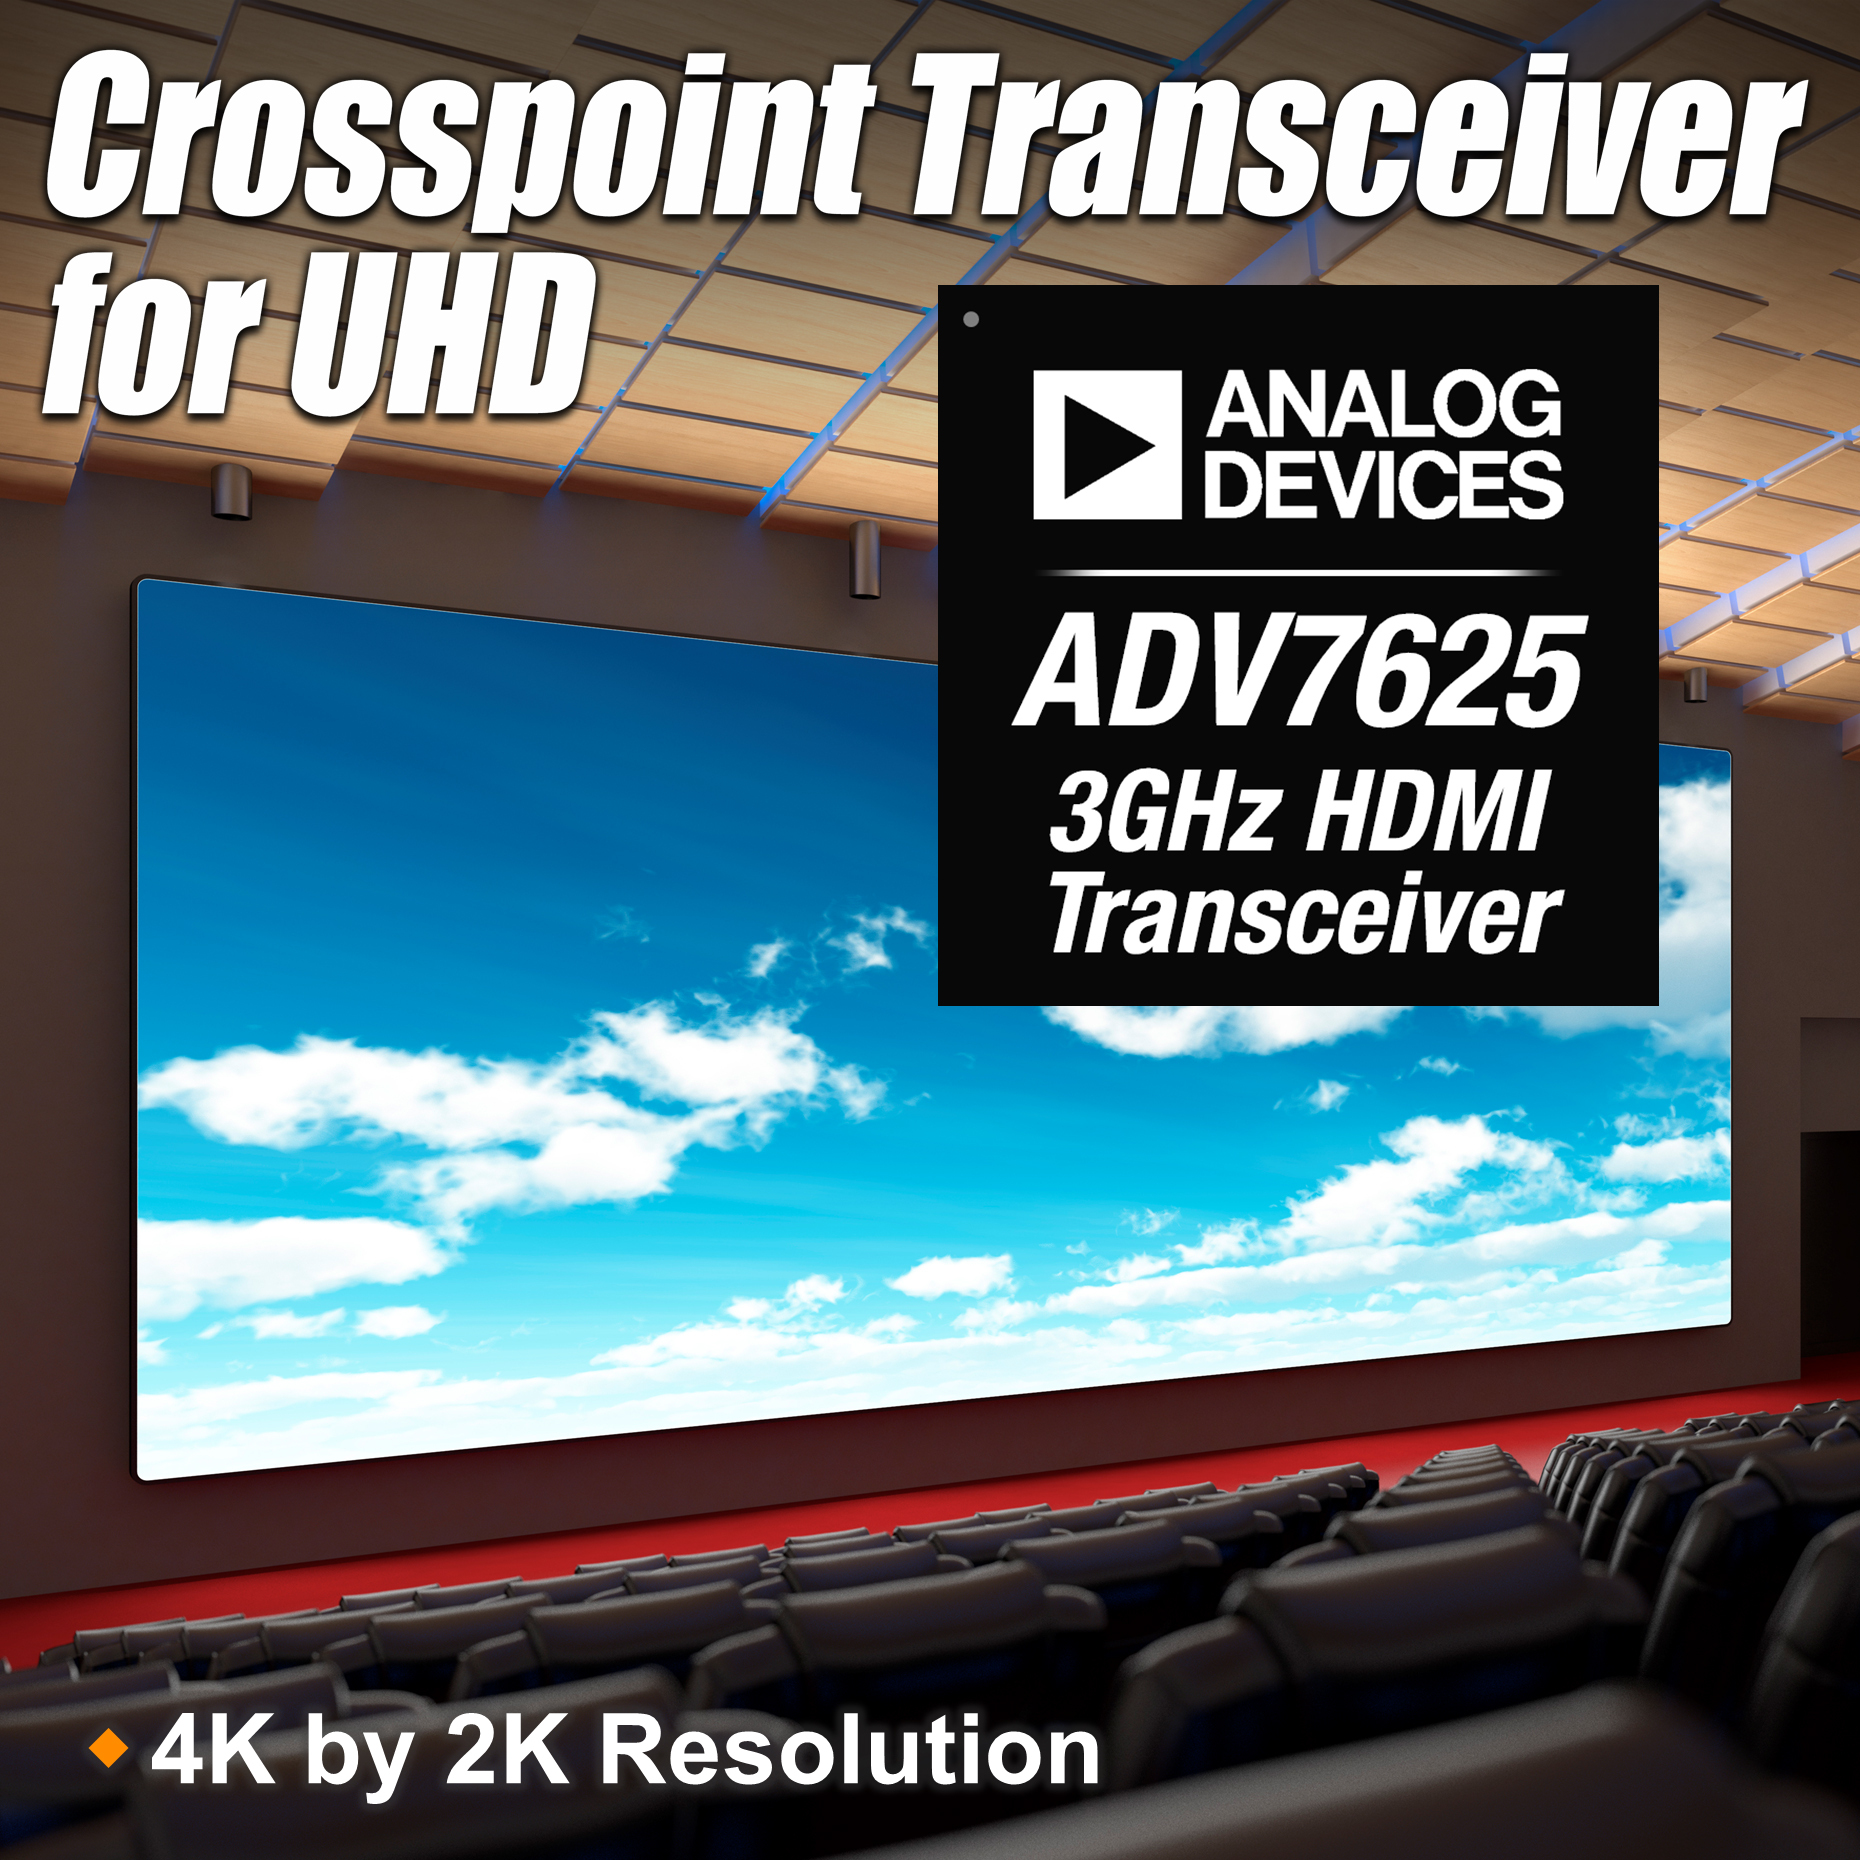 Crosspoint Transceivers Distribute Wide Range of Ultra-High